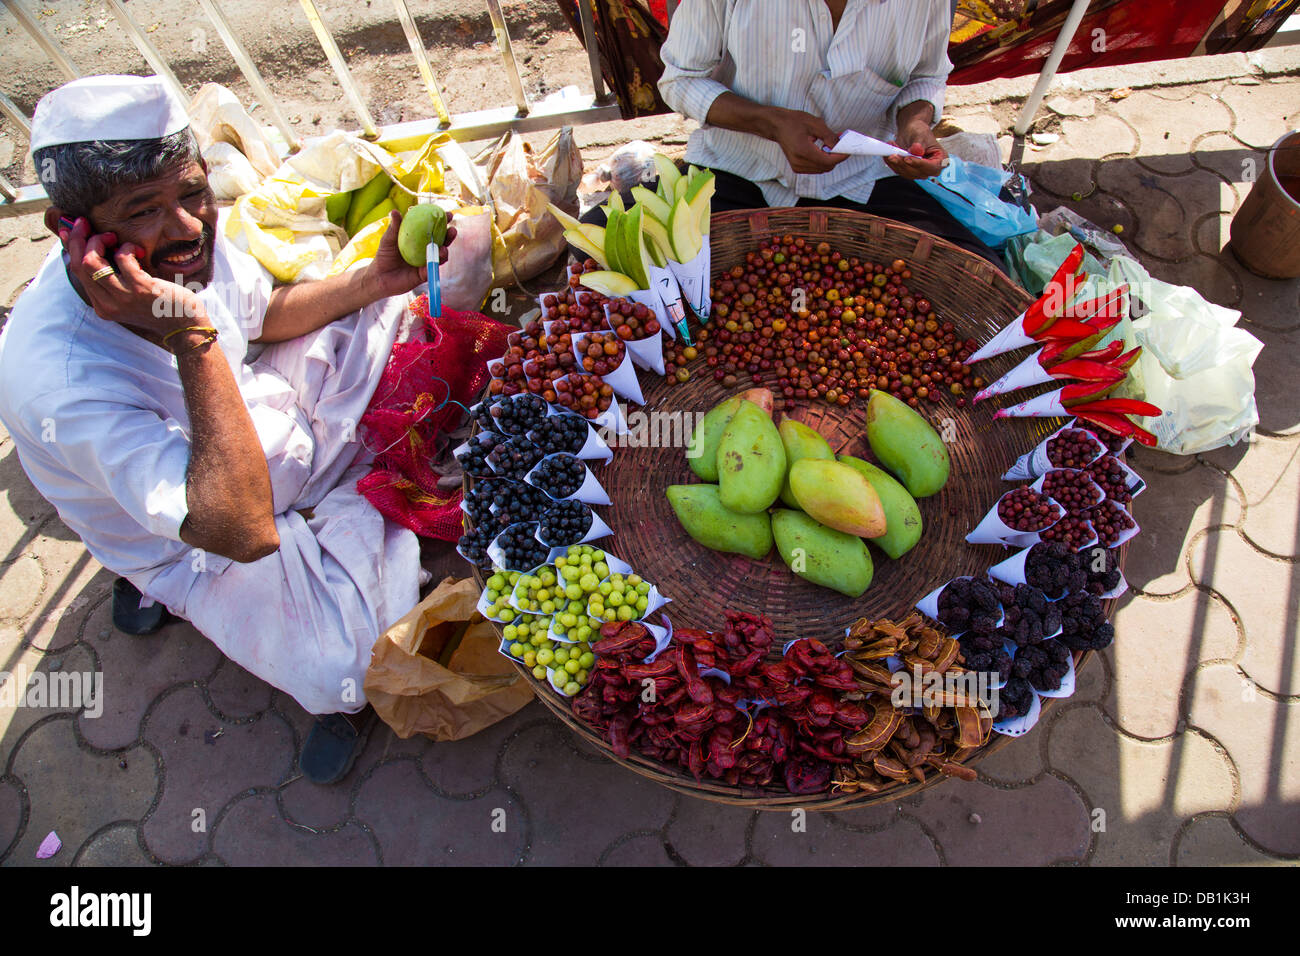 Obst Snacks Obst Snacks Suppen In Mumbai Indien Stockfoto Bild 58429269